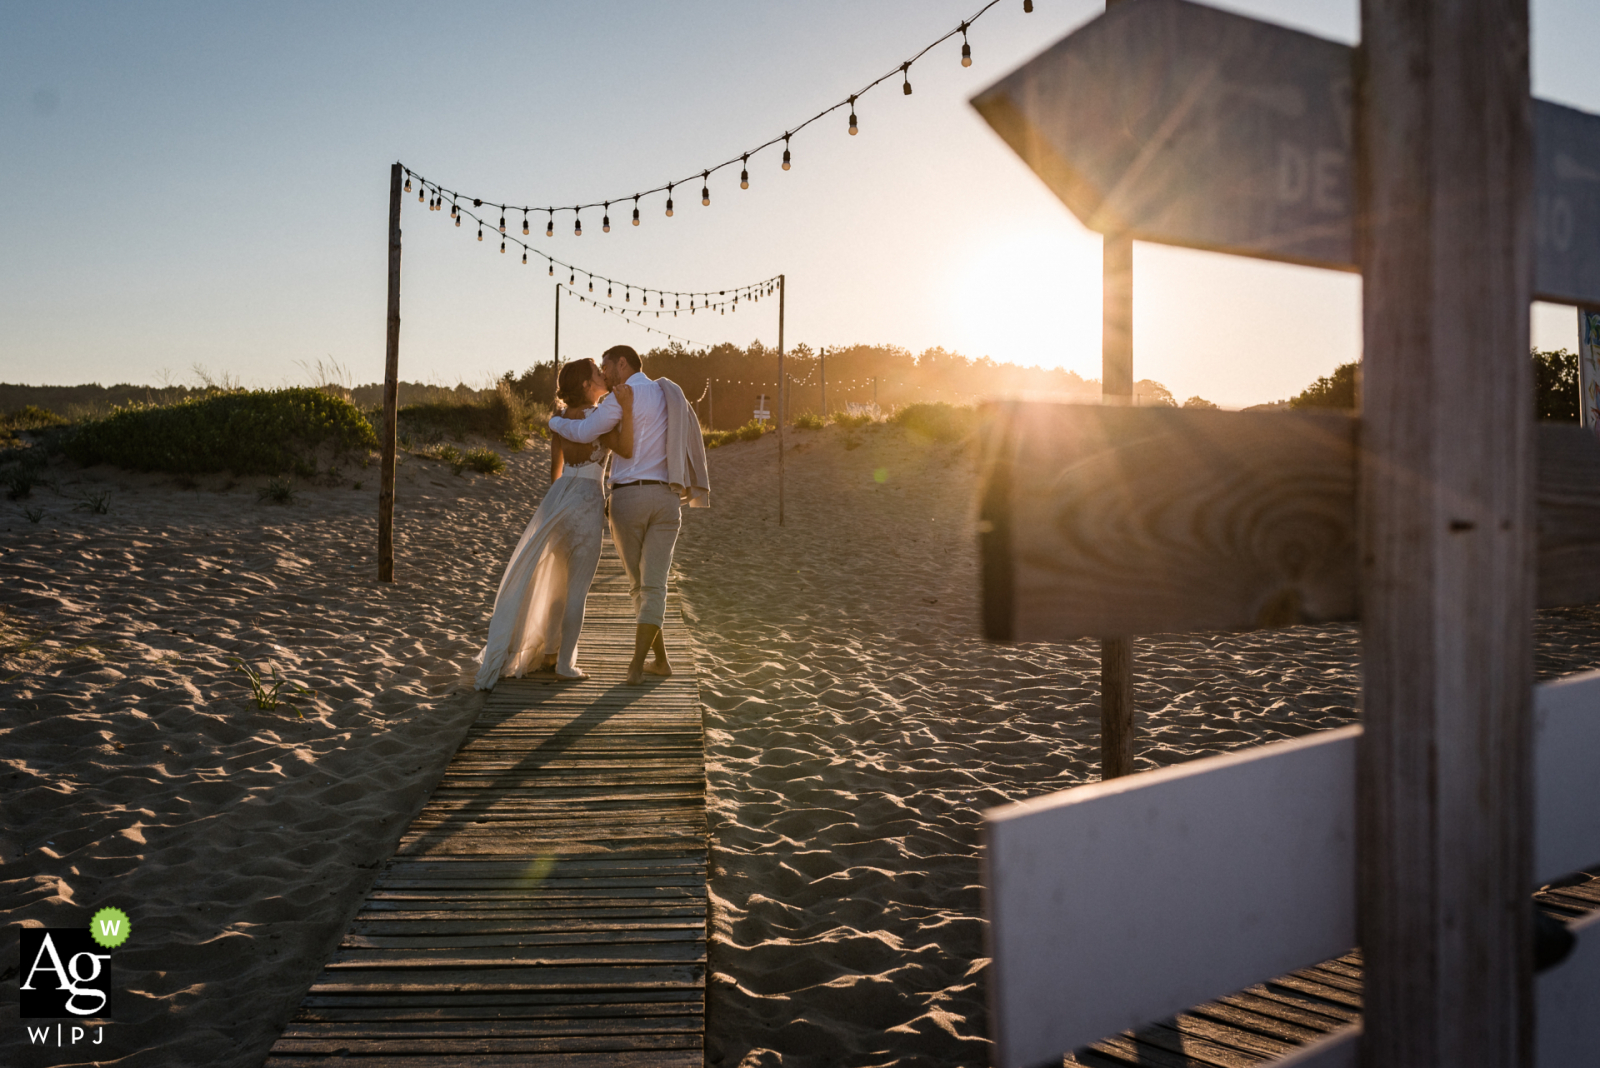 Sozopol, Bulgaria creative wedding day Photo from the shoot we did with the couple, right after the ceremony on the beach boardwalk over the sand